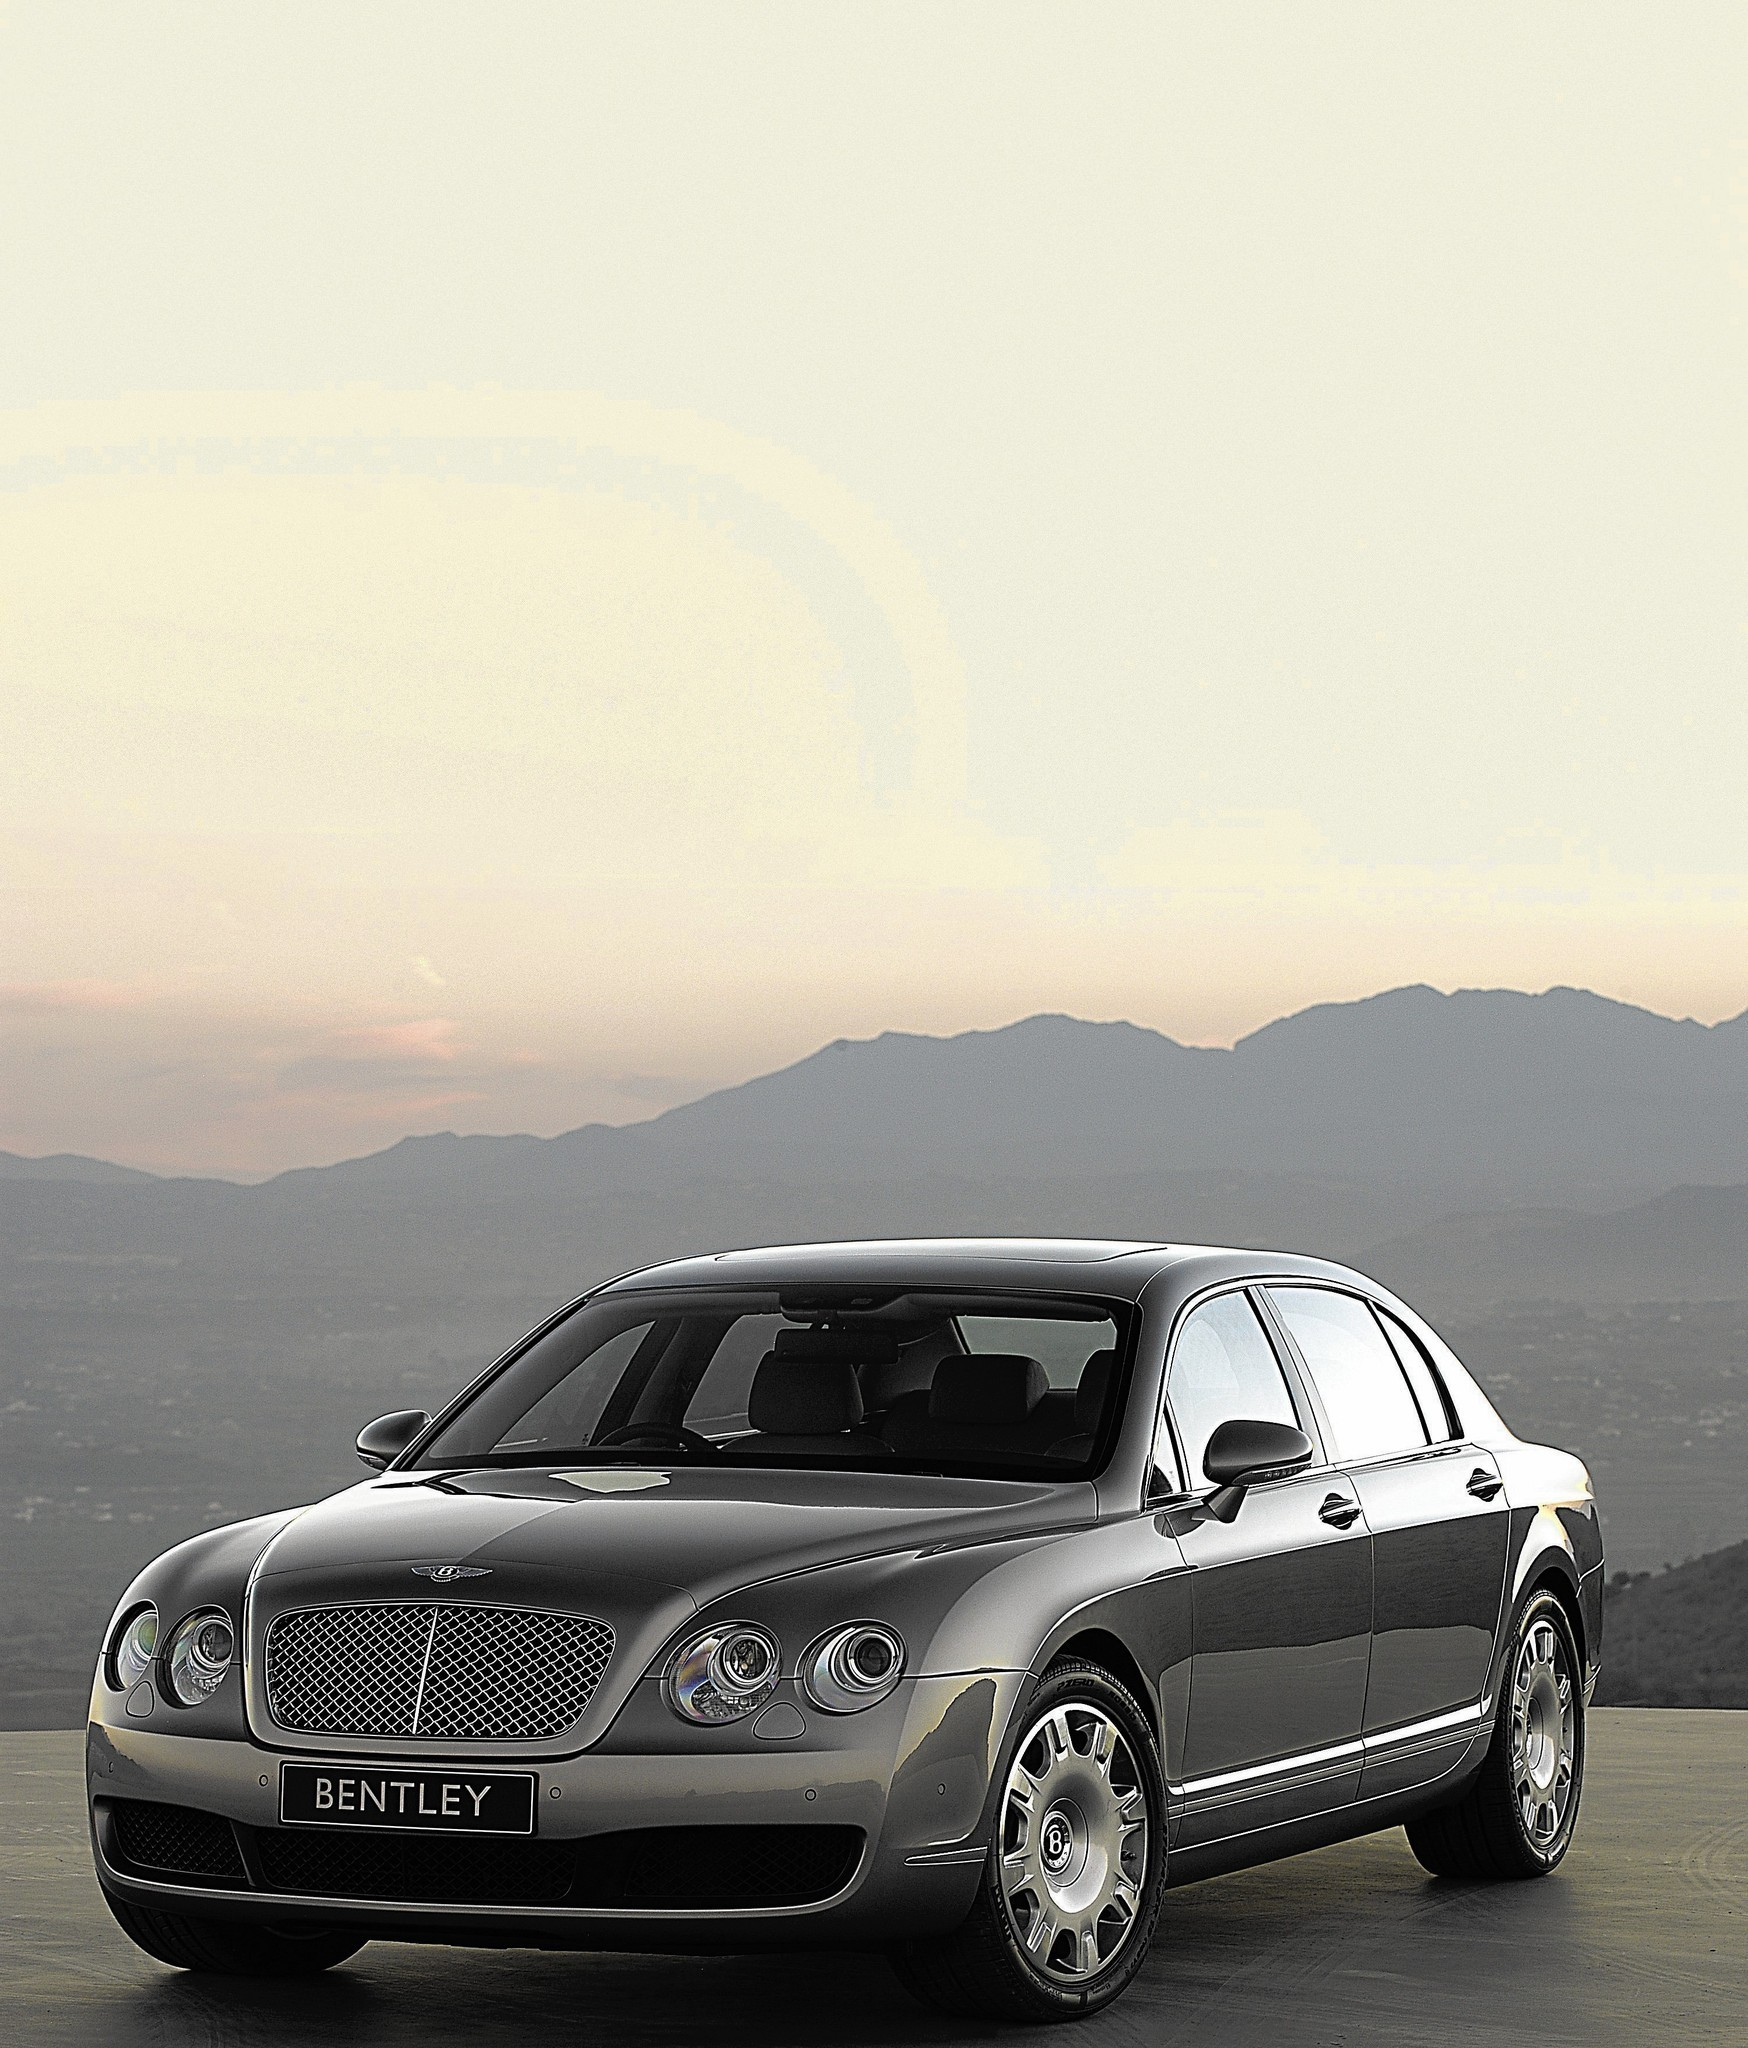 The Osbournes New Bentley Flying Spur: Poor AM Radio Reception Grounds Bentley Flying Spur Owner